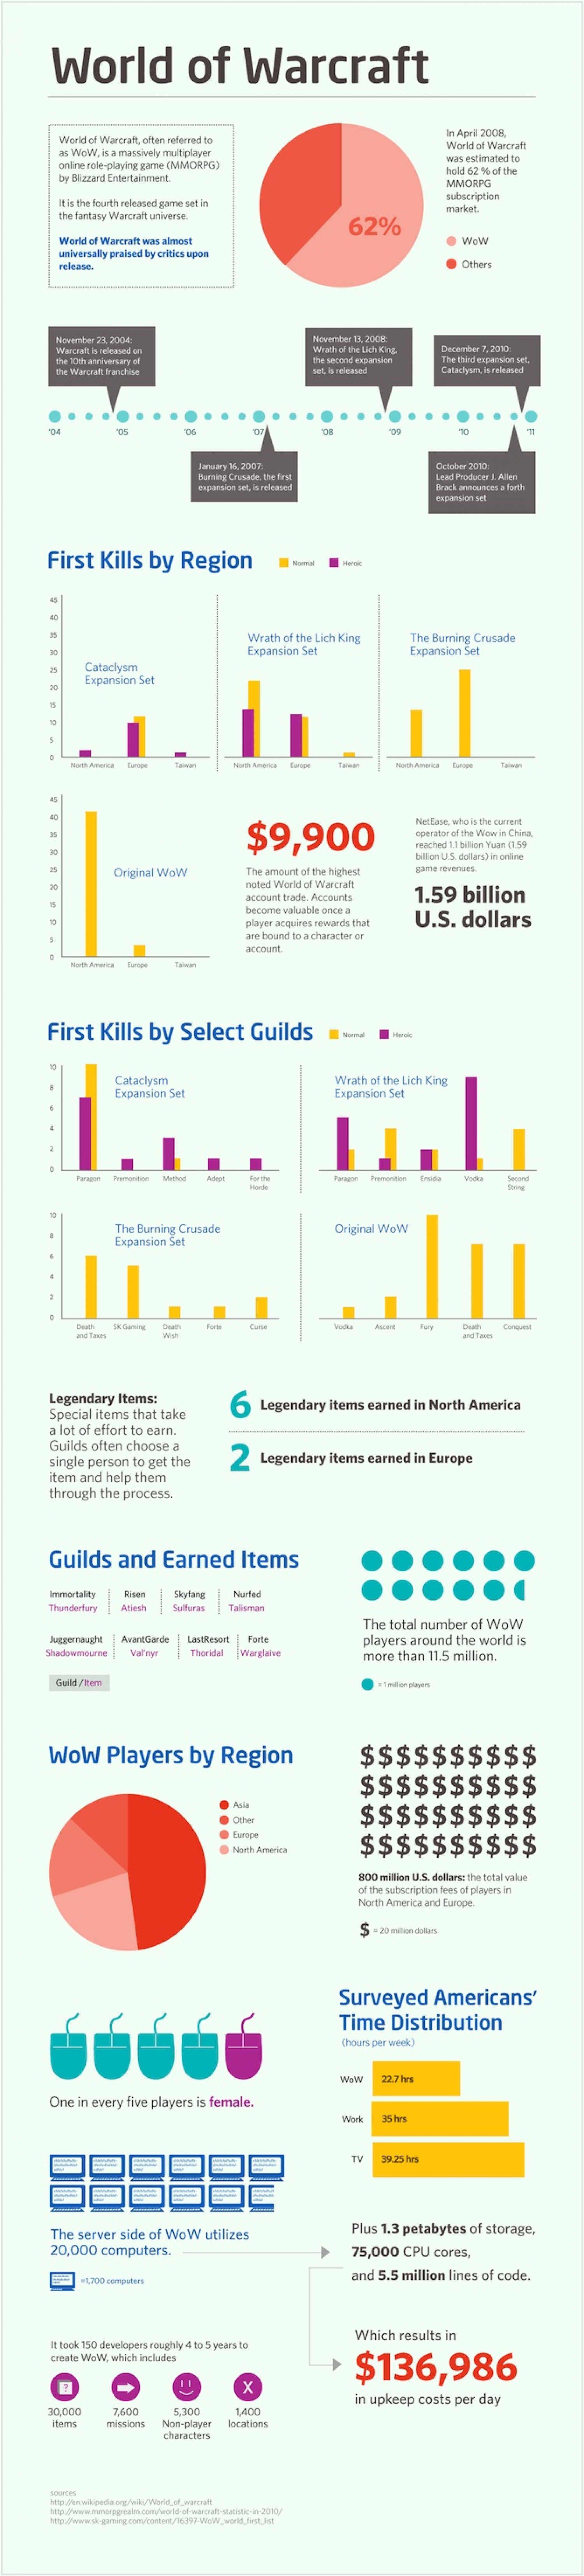 World of Warcraft by the numbers Infographic